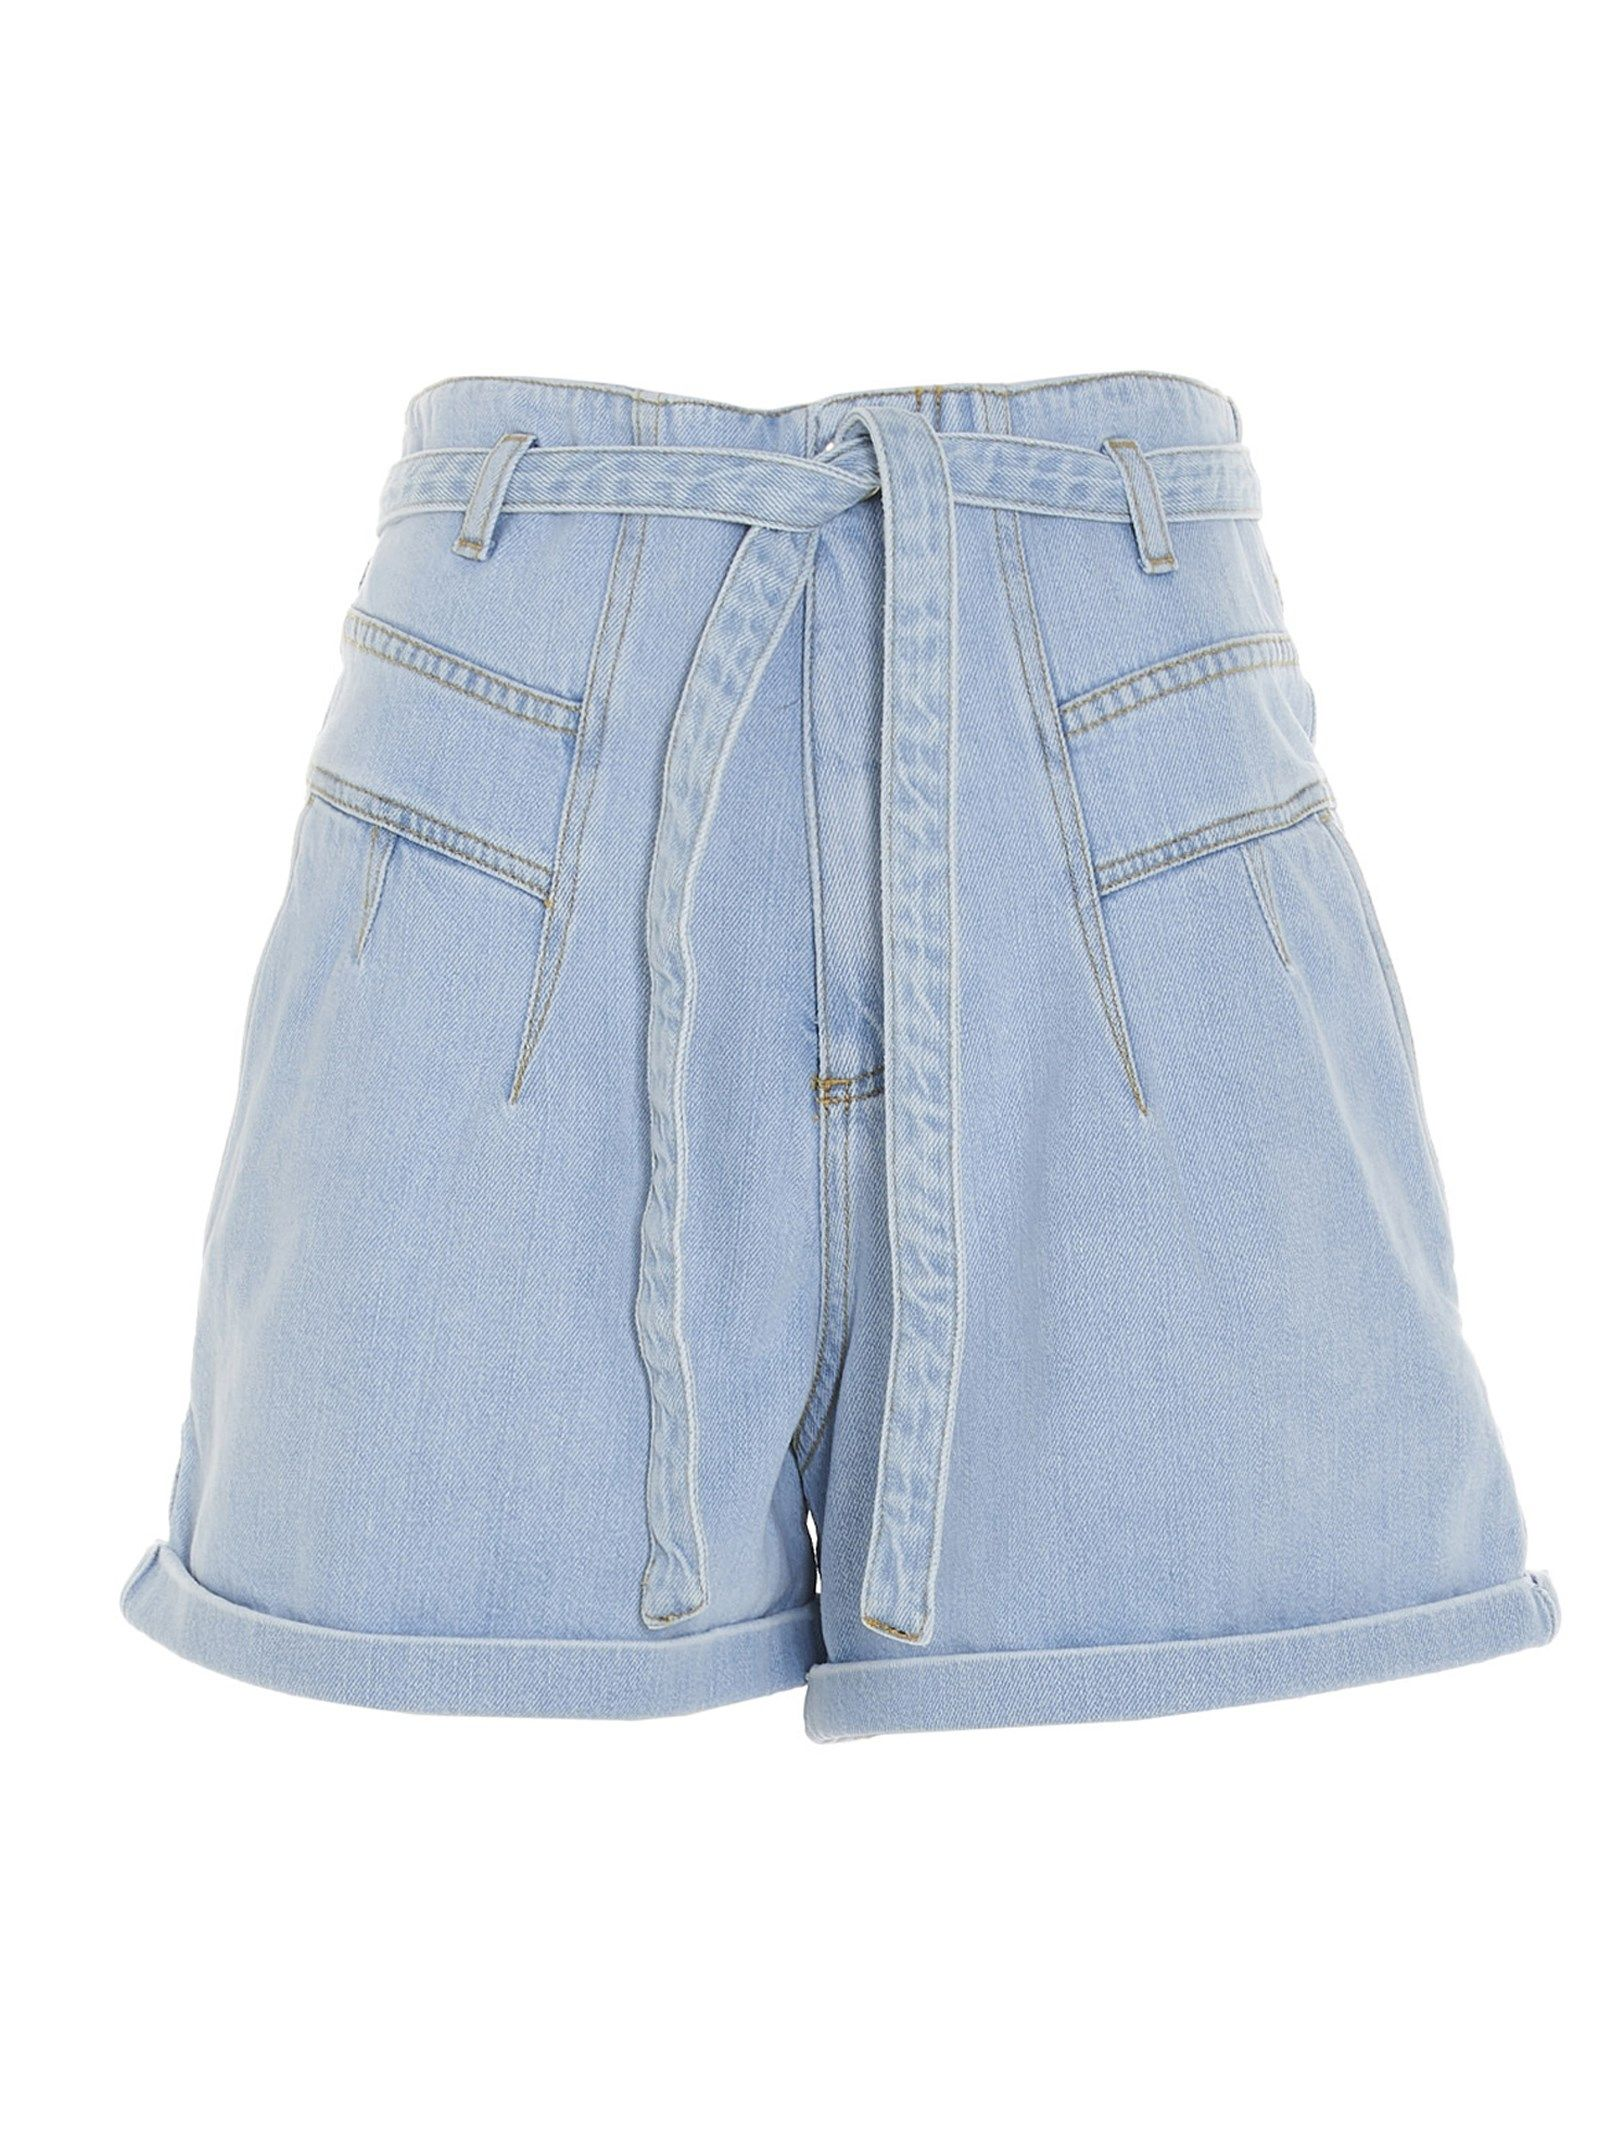 Pinko Cottons PINKO WOMEN'S 1J10M0Y649F14 LIGHT BLUE OTHER MATERIALS SHORTS